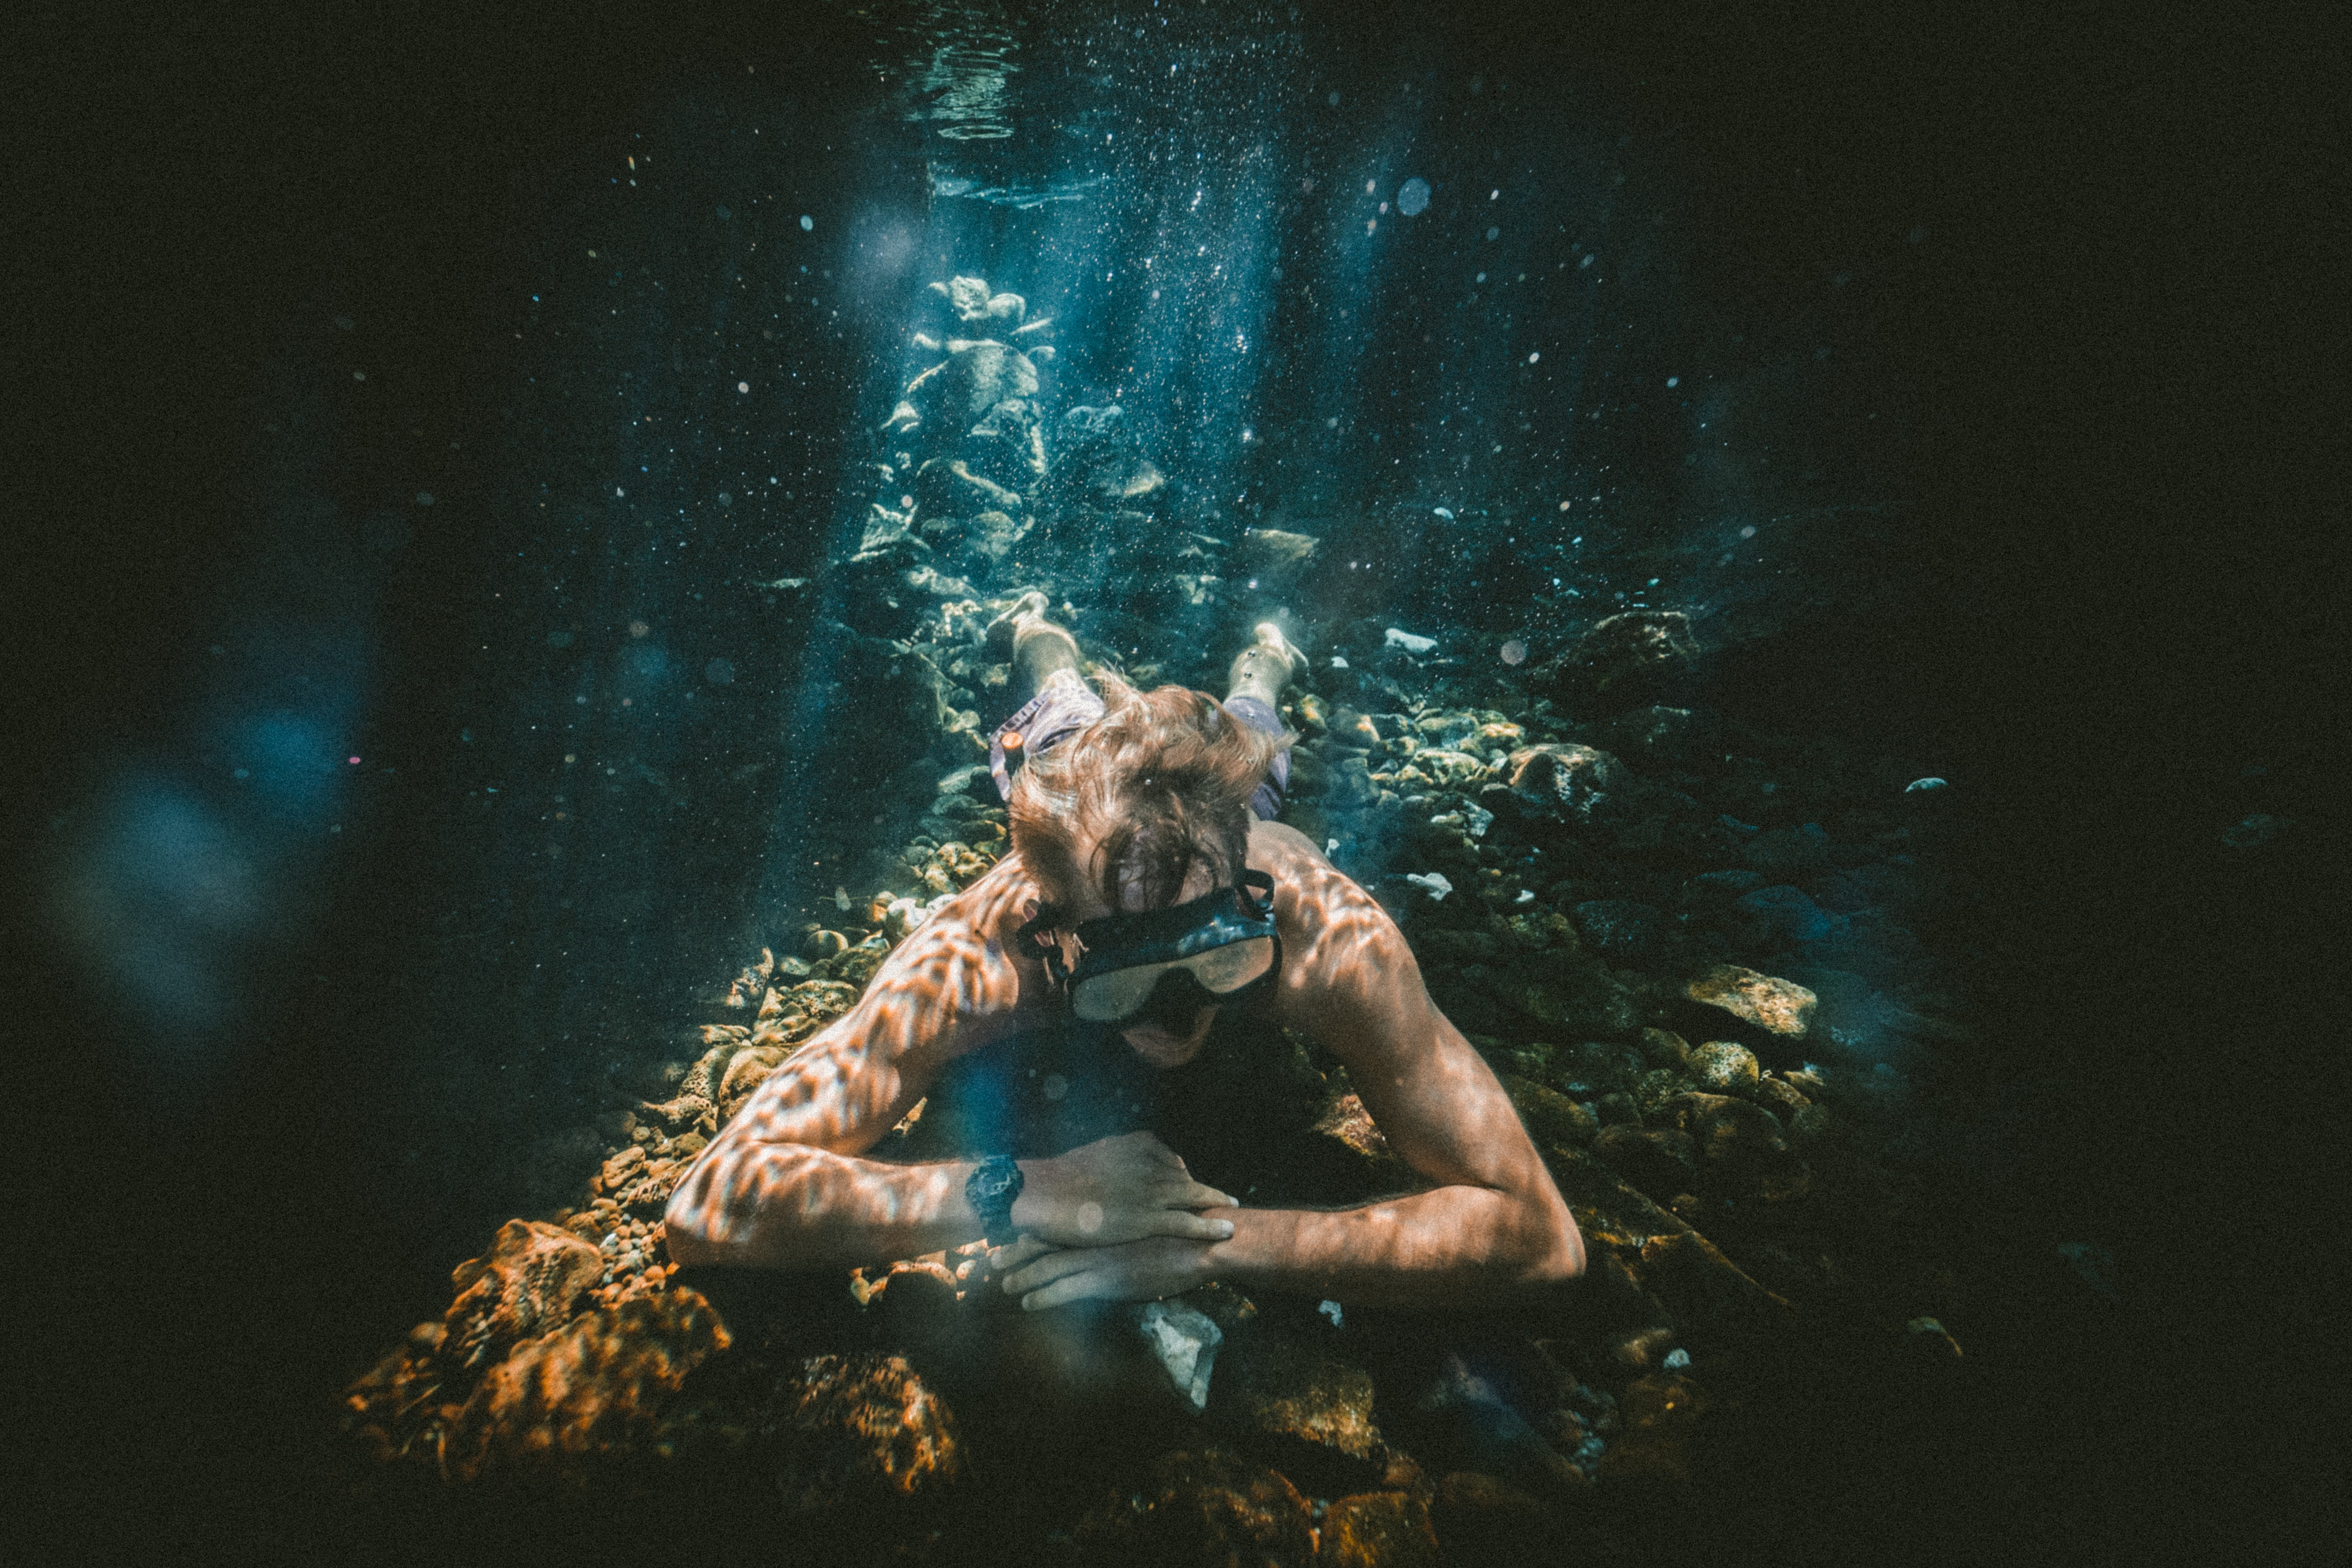 An underwater photo of a man snorkeling in a cave in the ocean